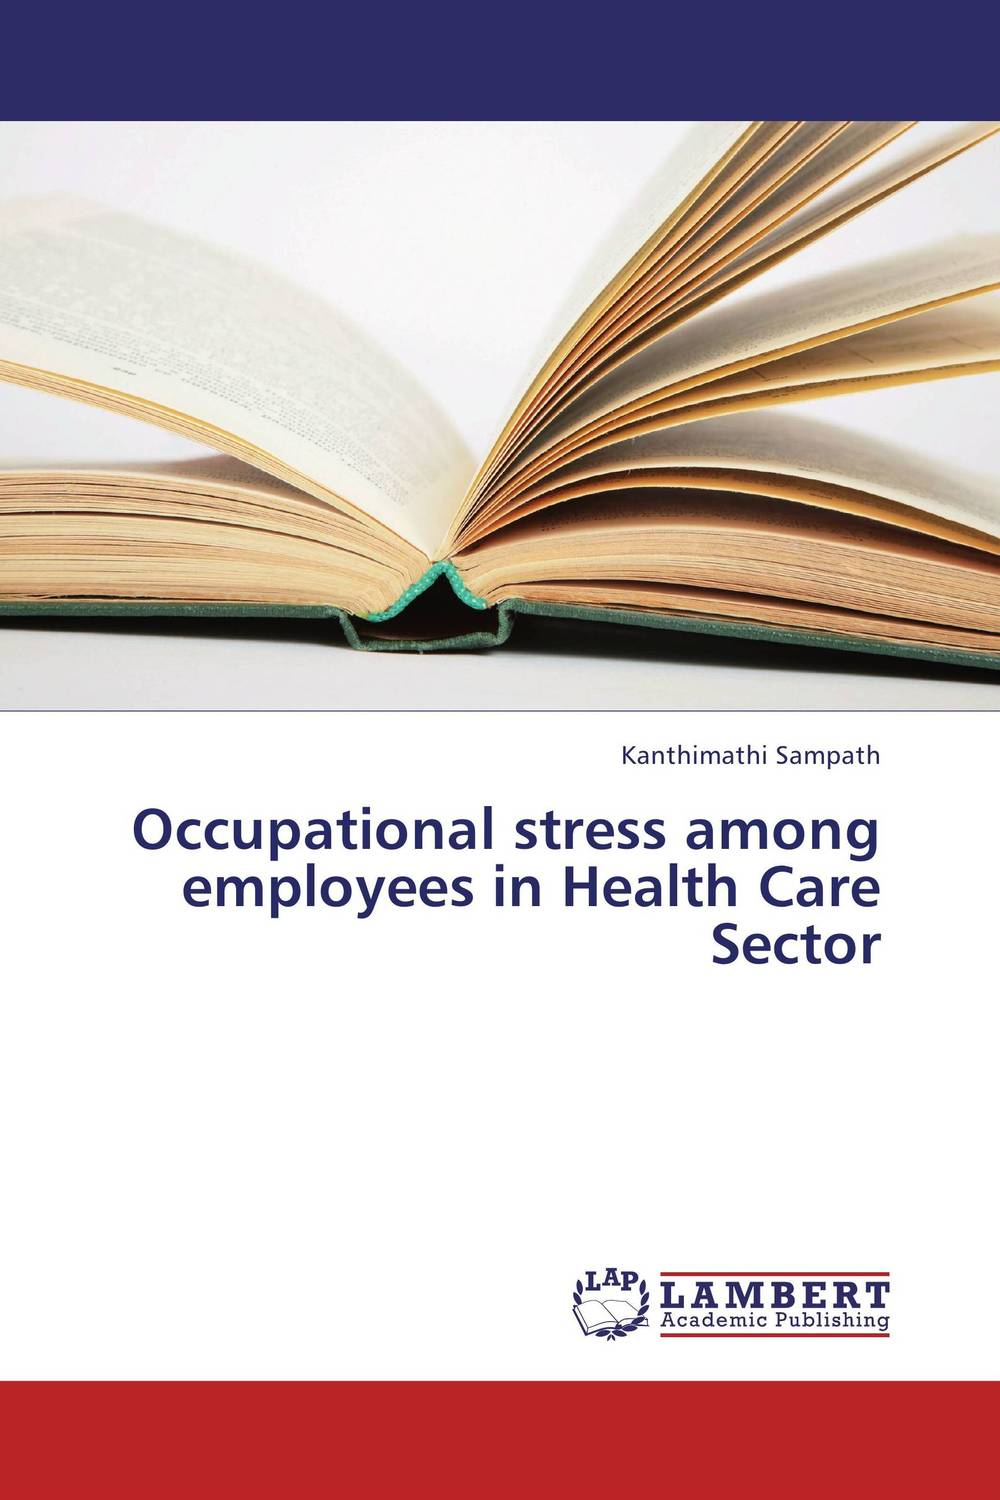 Occupational stress among employees in Health Care Sector dr ripudaman singh mrs arihant kaur bhalla and er indpreet kaur stress among bank employees